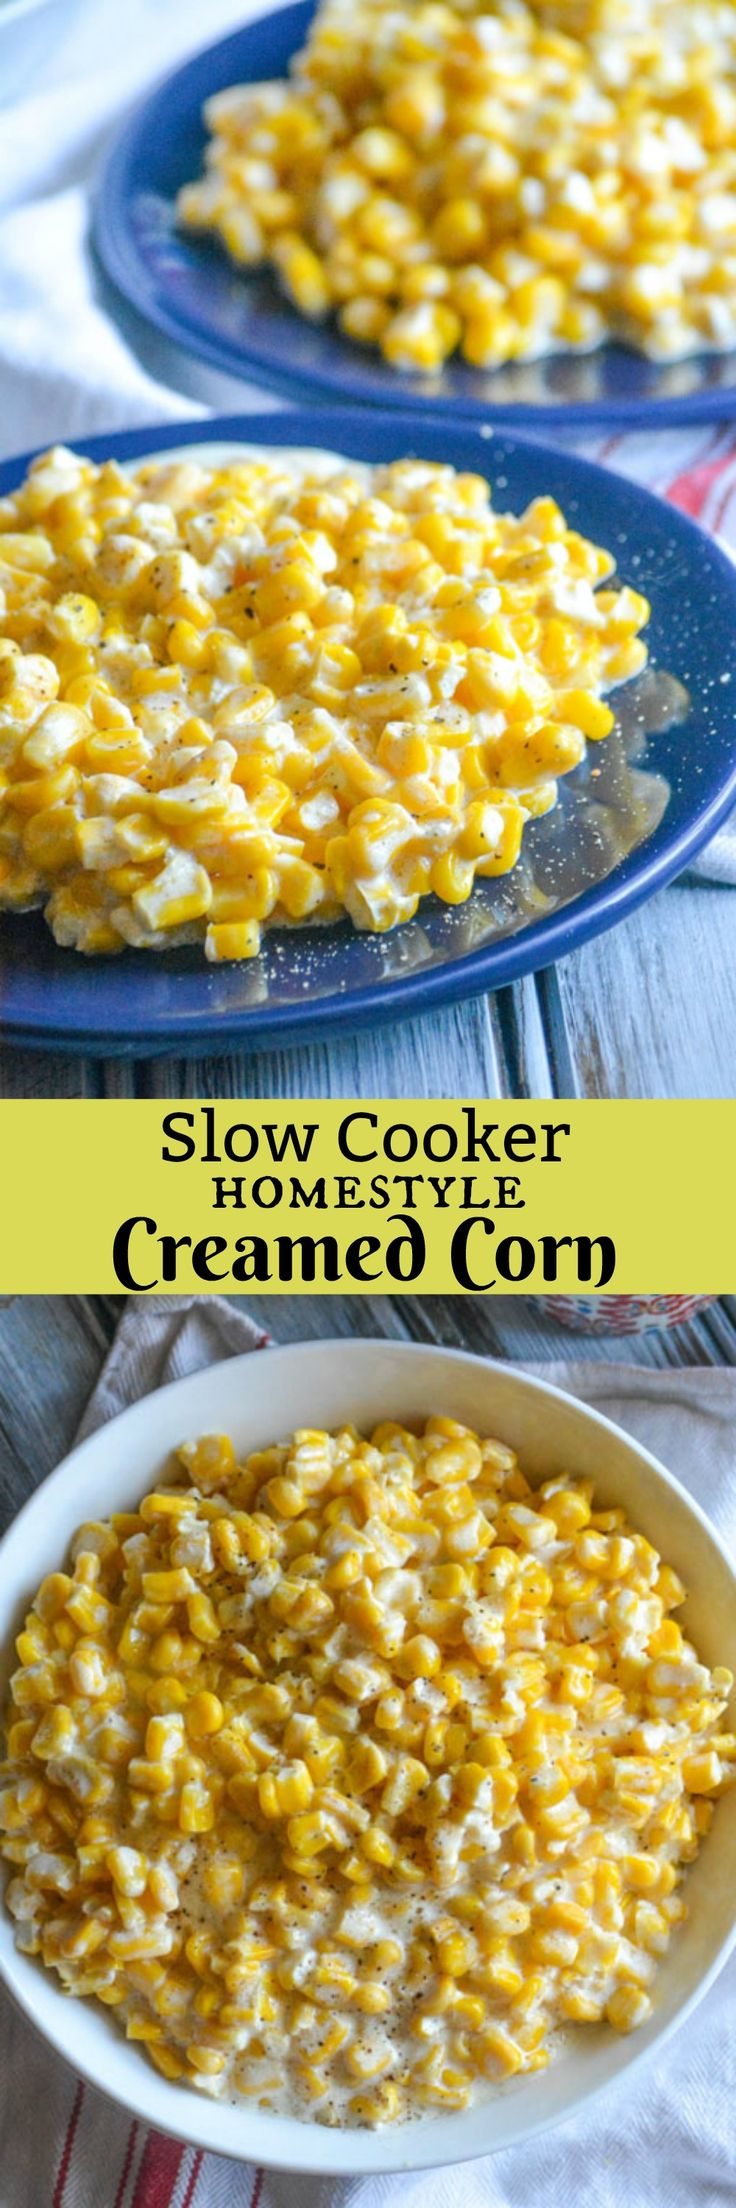 Kick the canned habit, and go with this Slow Cooker Homemade Cream Style Corn instead. Golden corn kernels in a sweet cream sauce, slow cooked to perfection- you'll never regret including this delectable 6 ingredient side dish on your dinner menu.